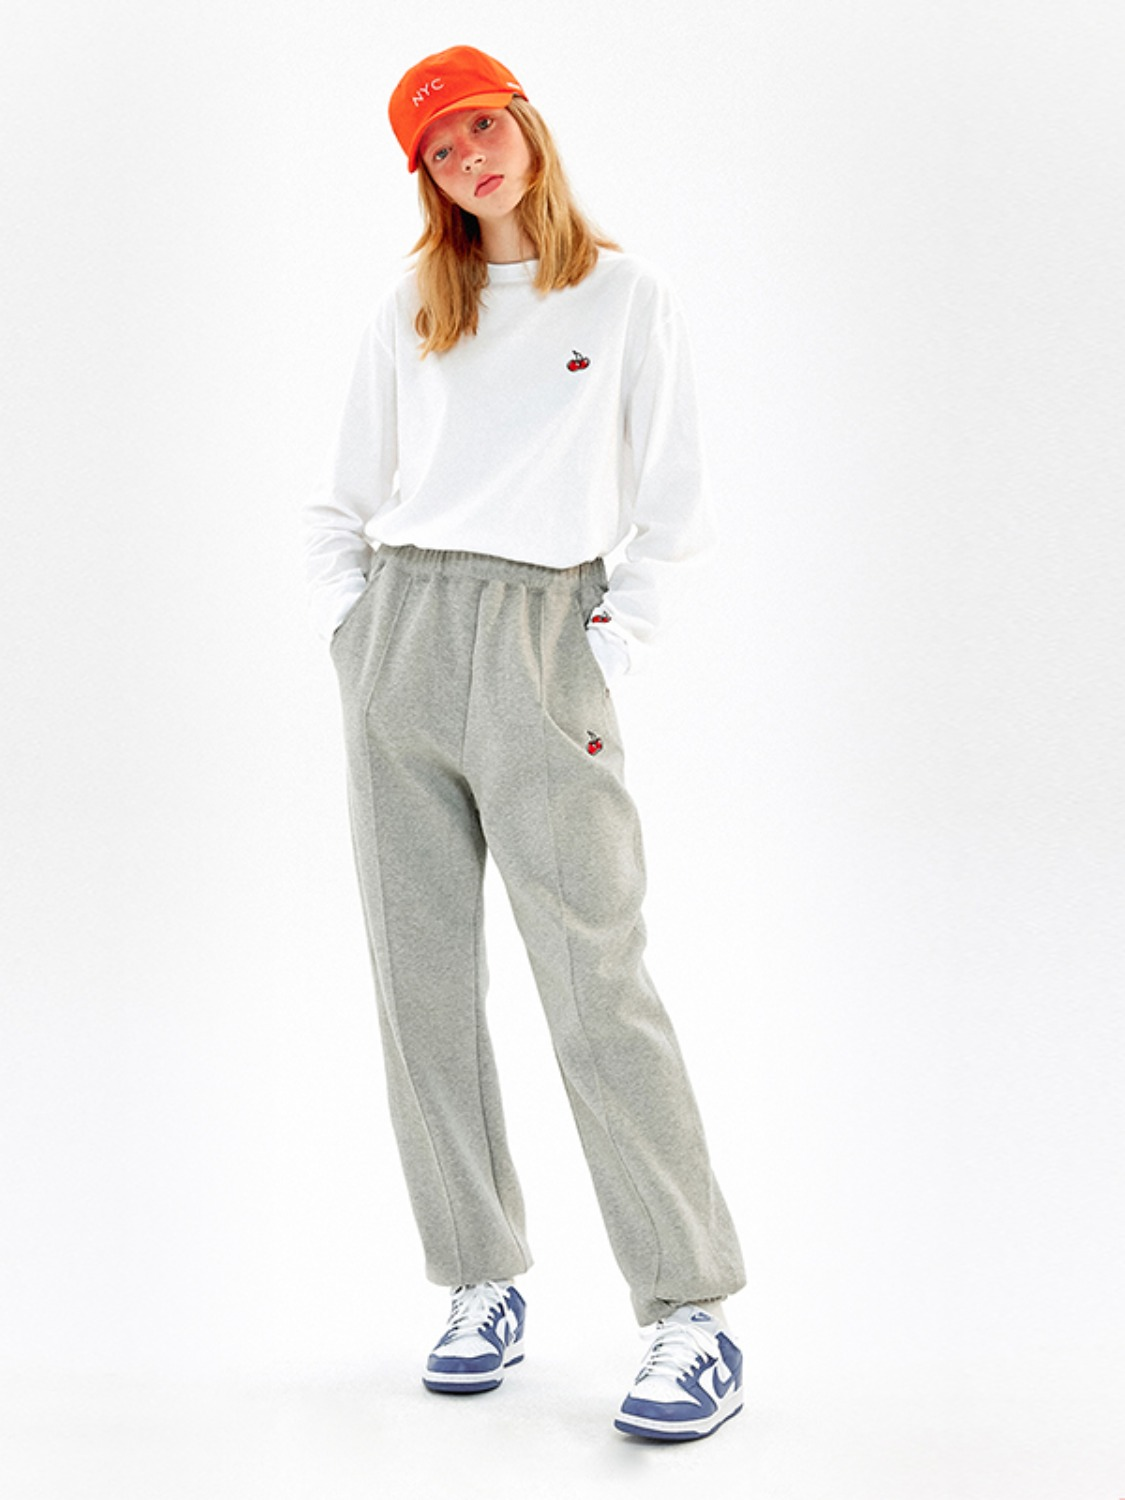 (2월 12일 예약 발송)CHERRY JOGGER LINE PANTS KS [MELANGE GRAY]